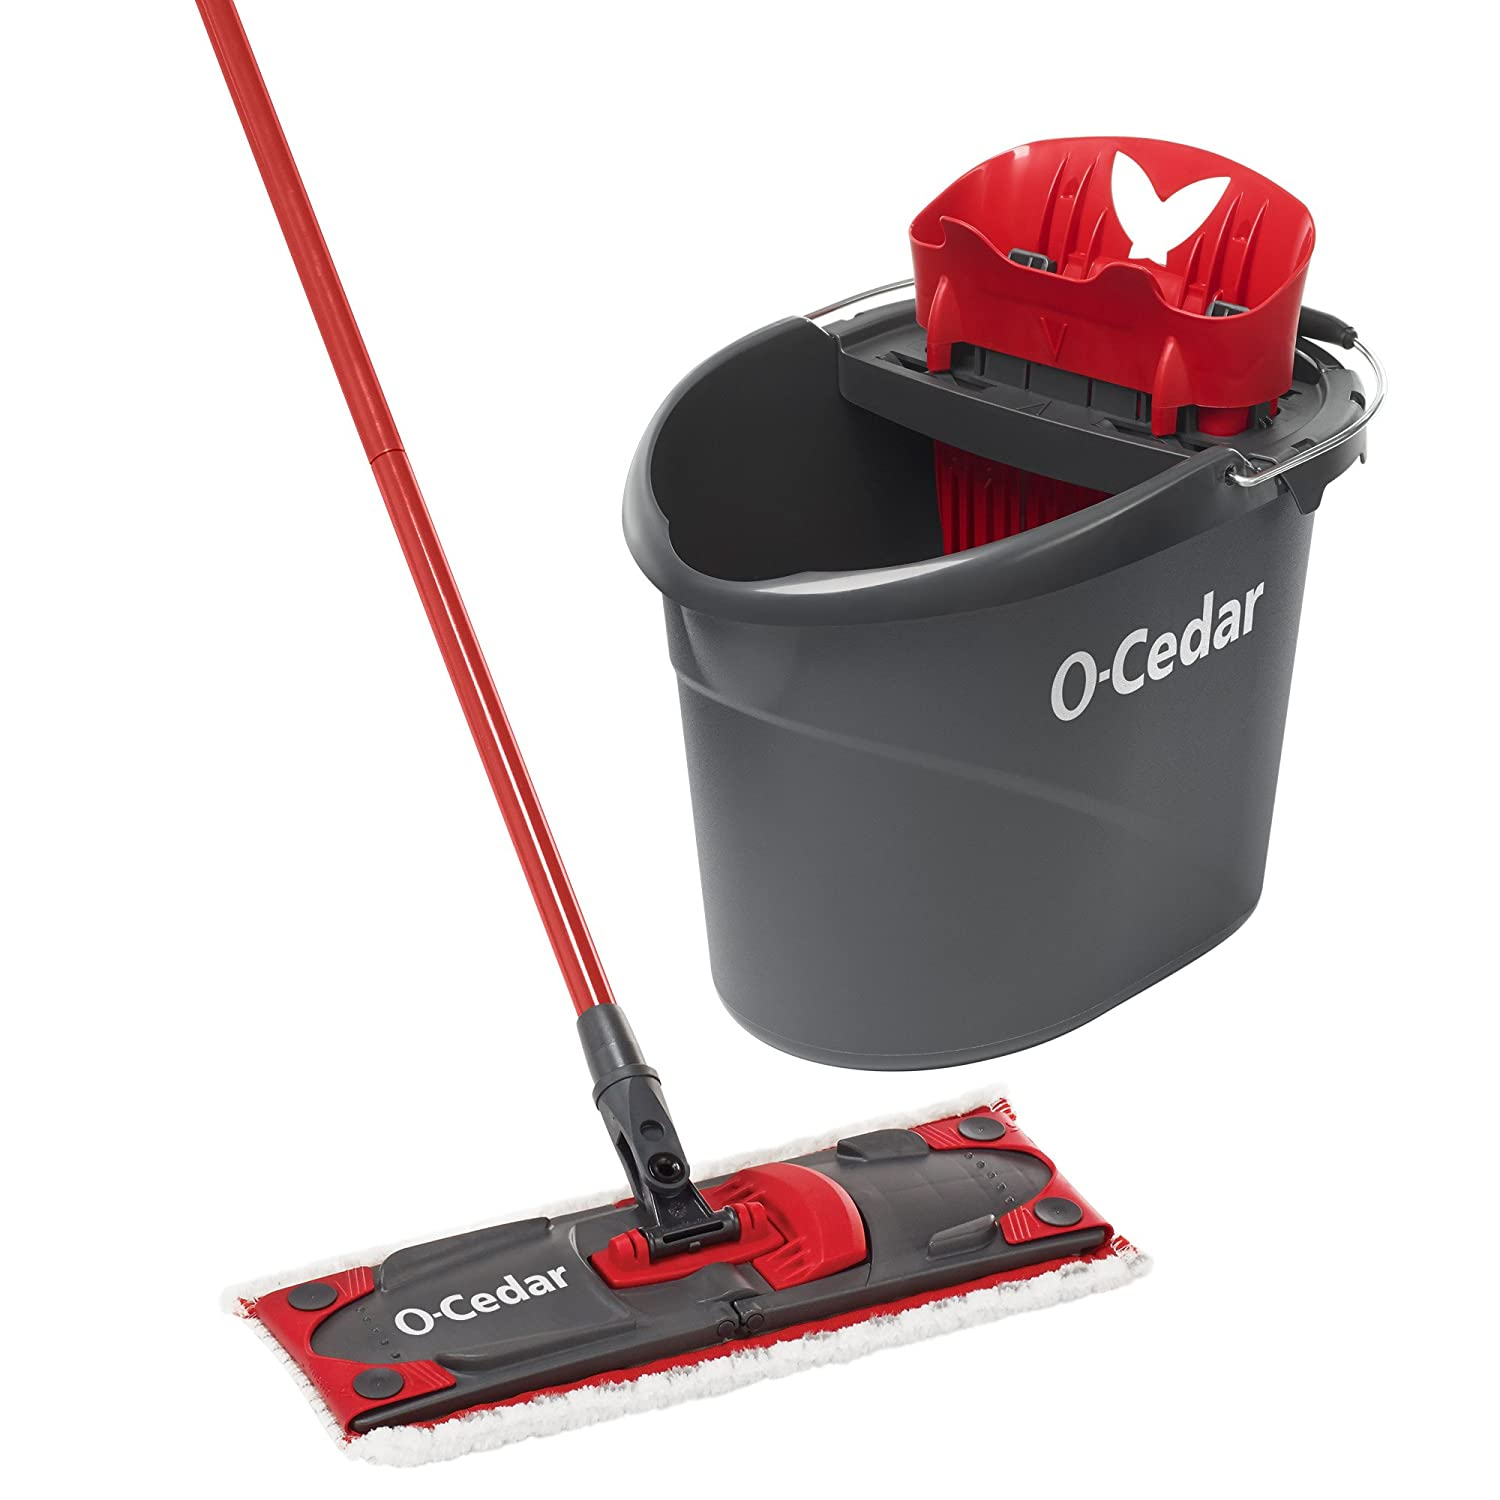 20 Best Spin Mop And Buckets 2019 2020 Reviews